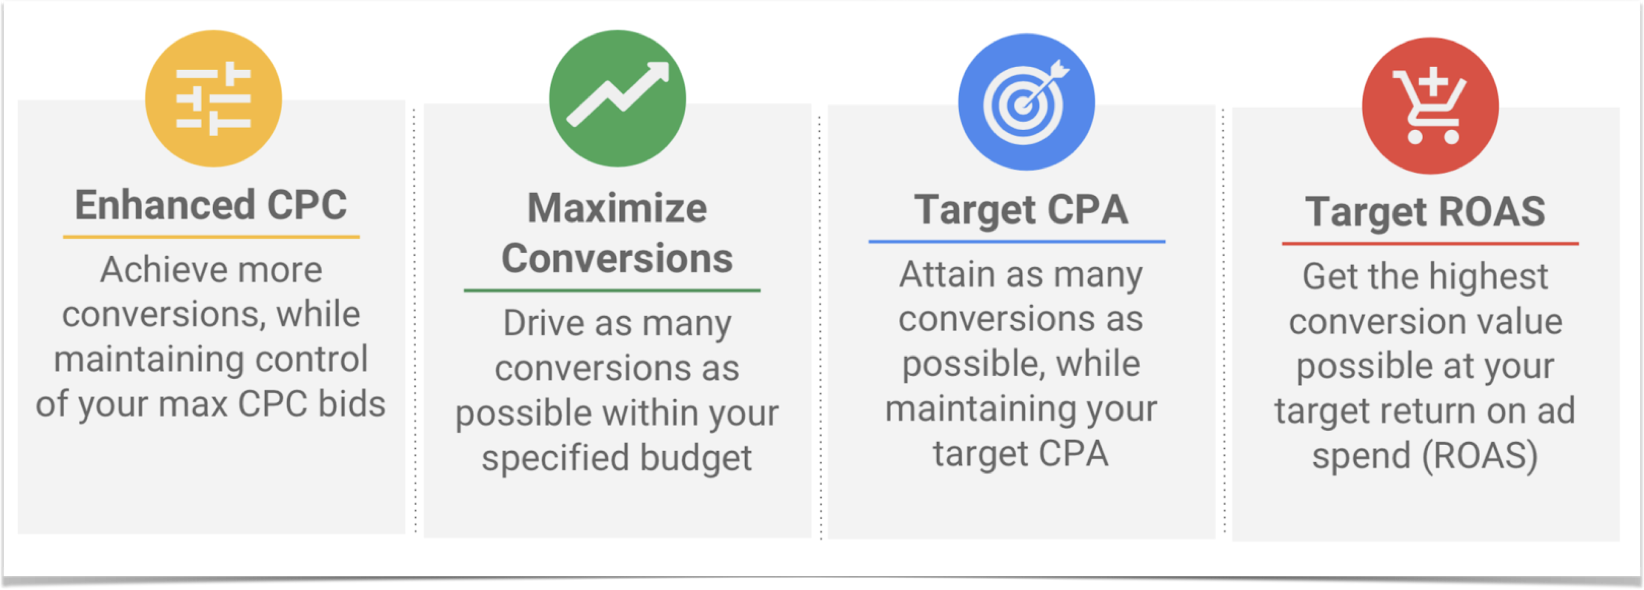 Enhanced CPC, Maximize Conversions, Target CPA, and Target ROAS.